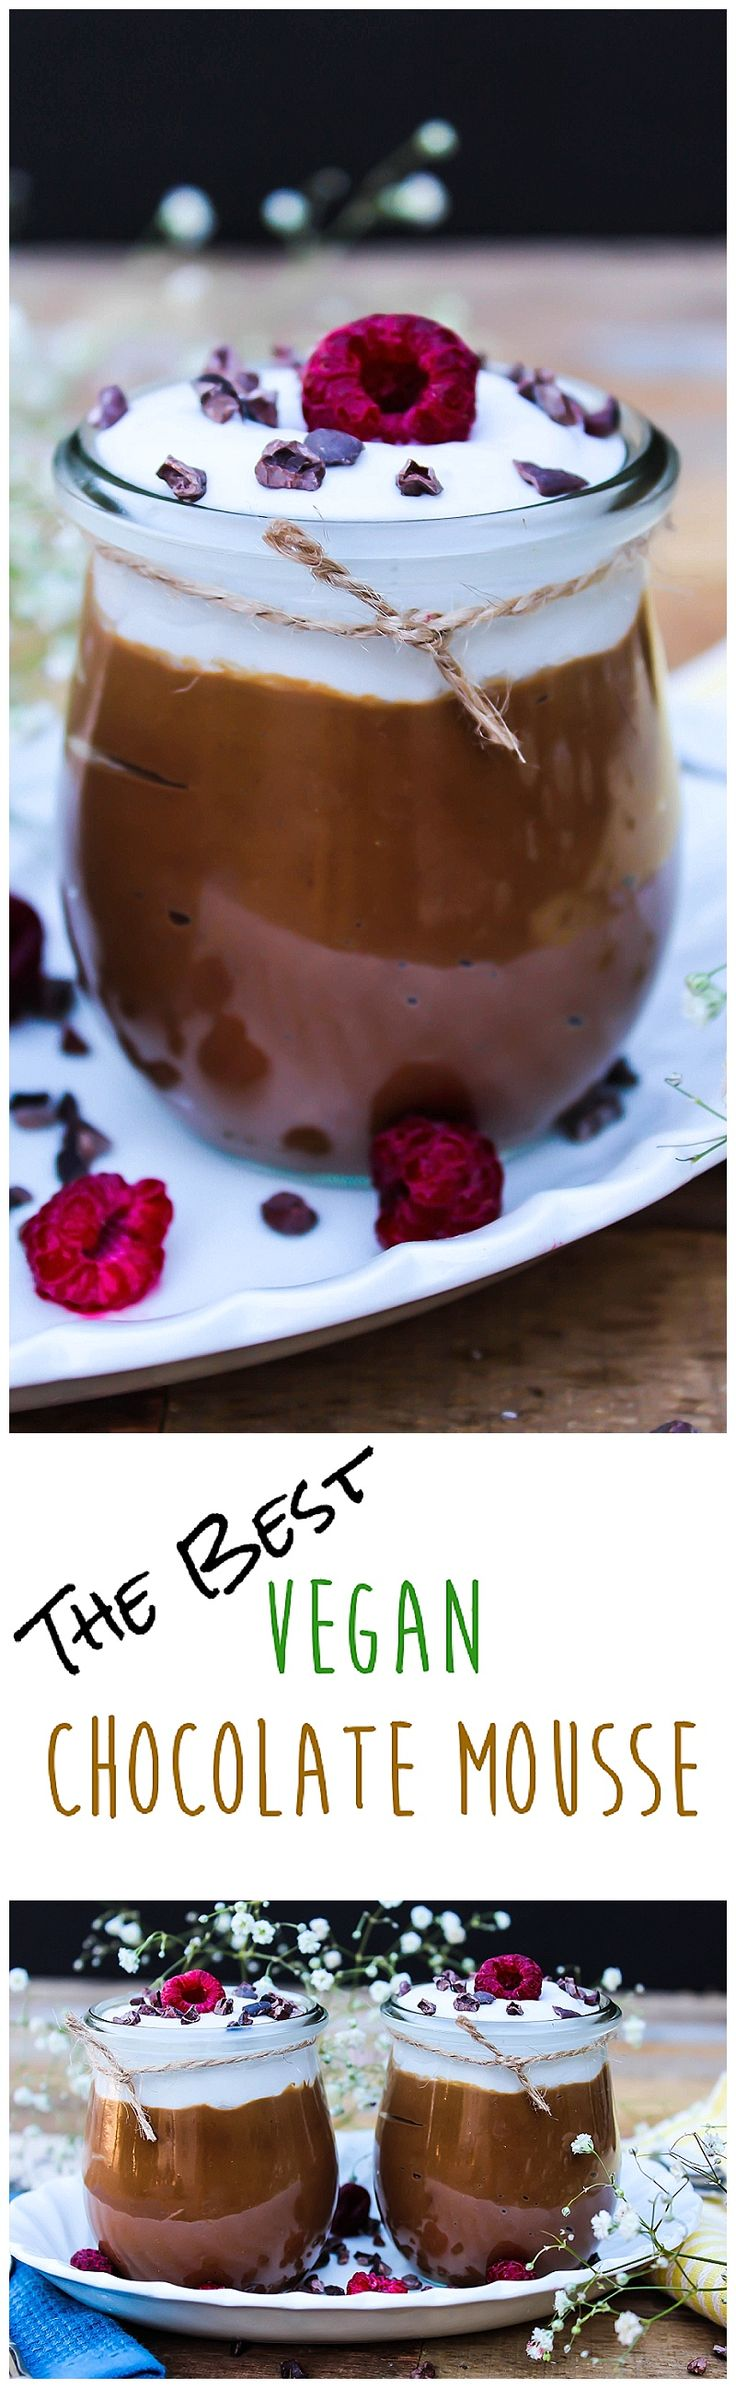 This creamy & dreamy mousse is gluten-free, vegan and is so delicious! Just natural & healthy ingredients. #veganmousse #veganglutenfree #vegandessert Chocolate Avocado Mousse - http://veganhuggs.com/chocolate-avocado-mousse/